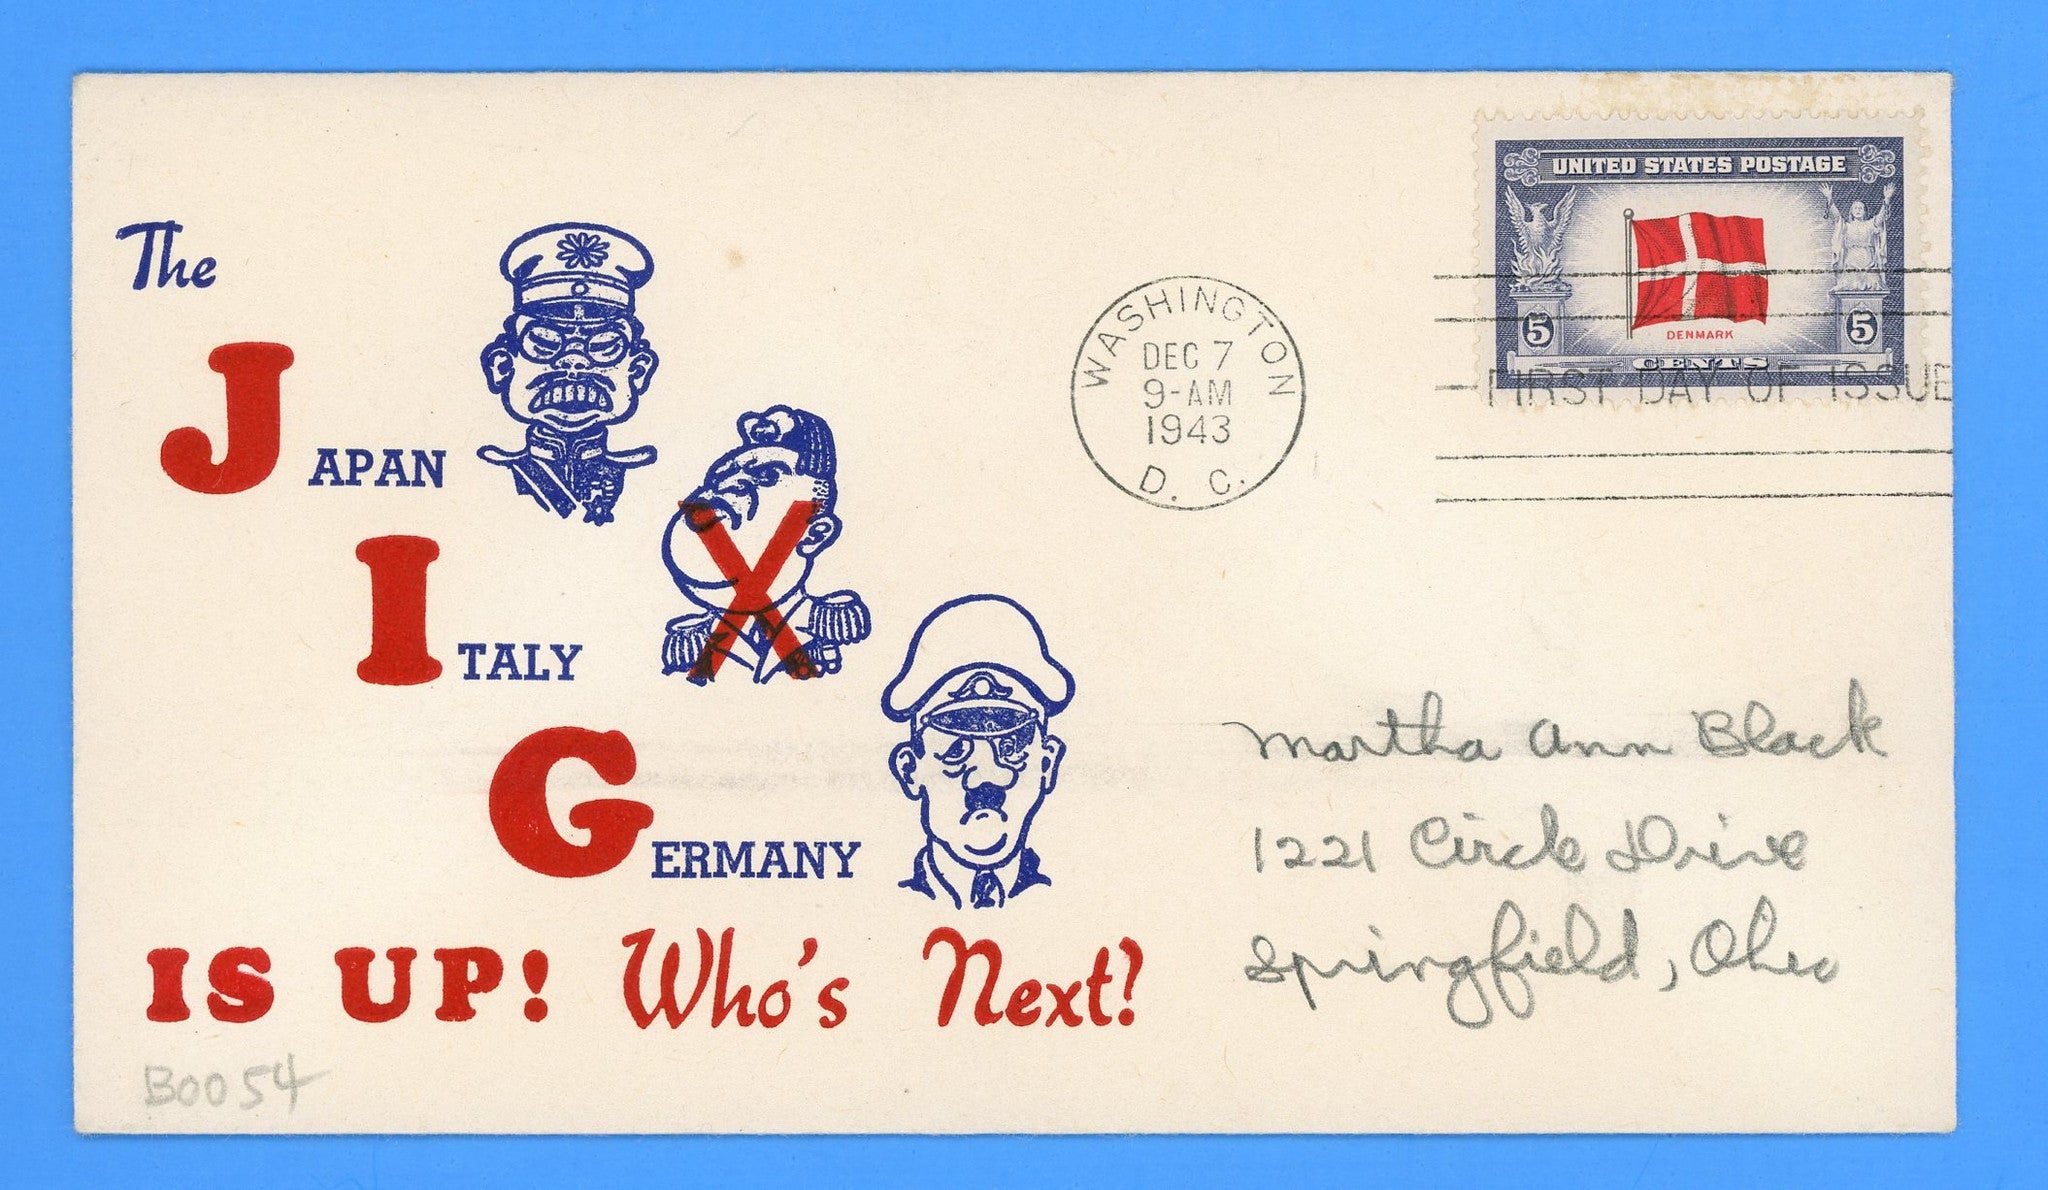 Scott #920 Overrun Nations, Denmark First Day Cover on Patriotic Cover